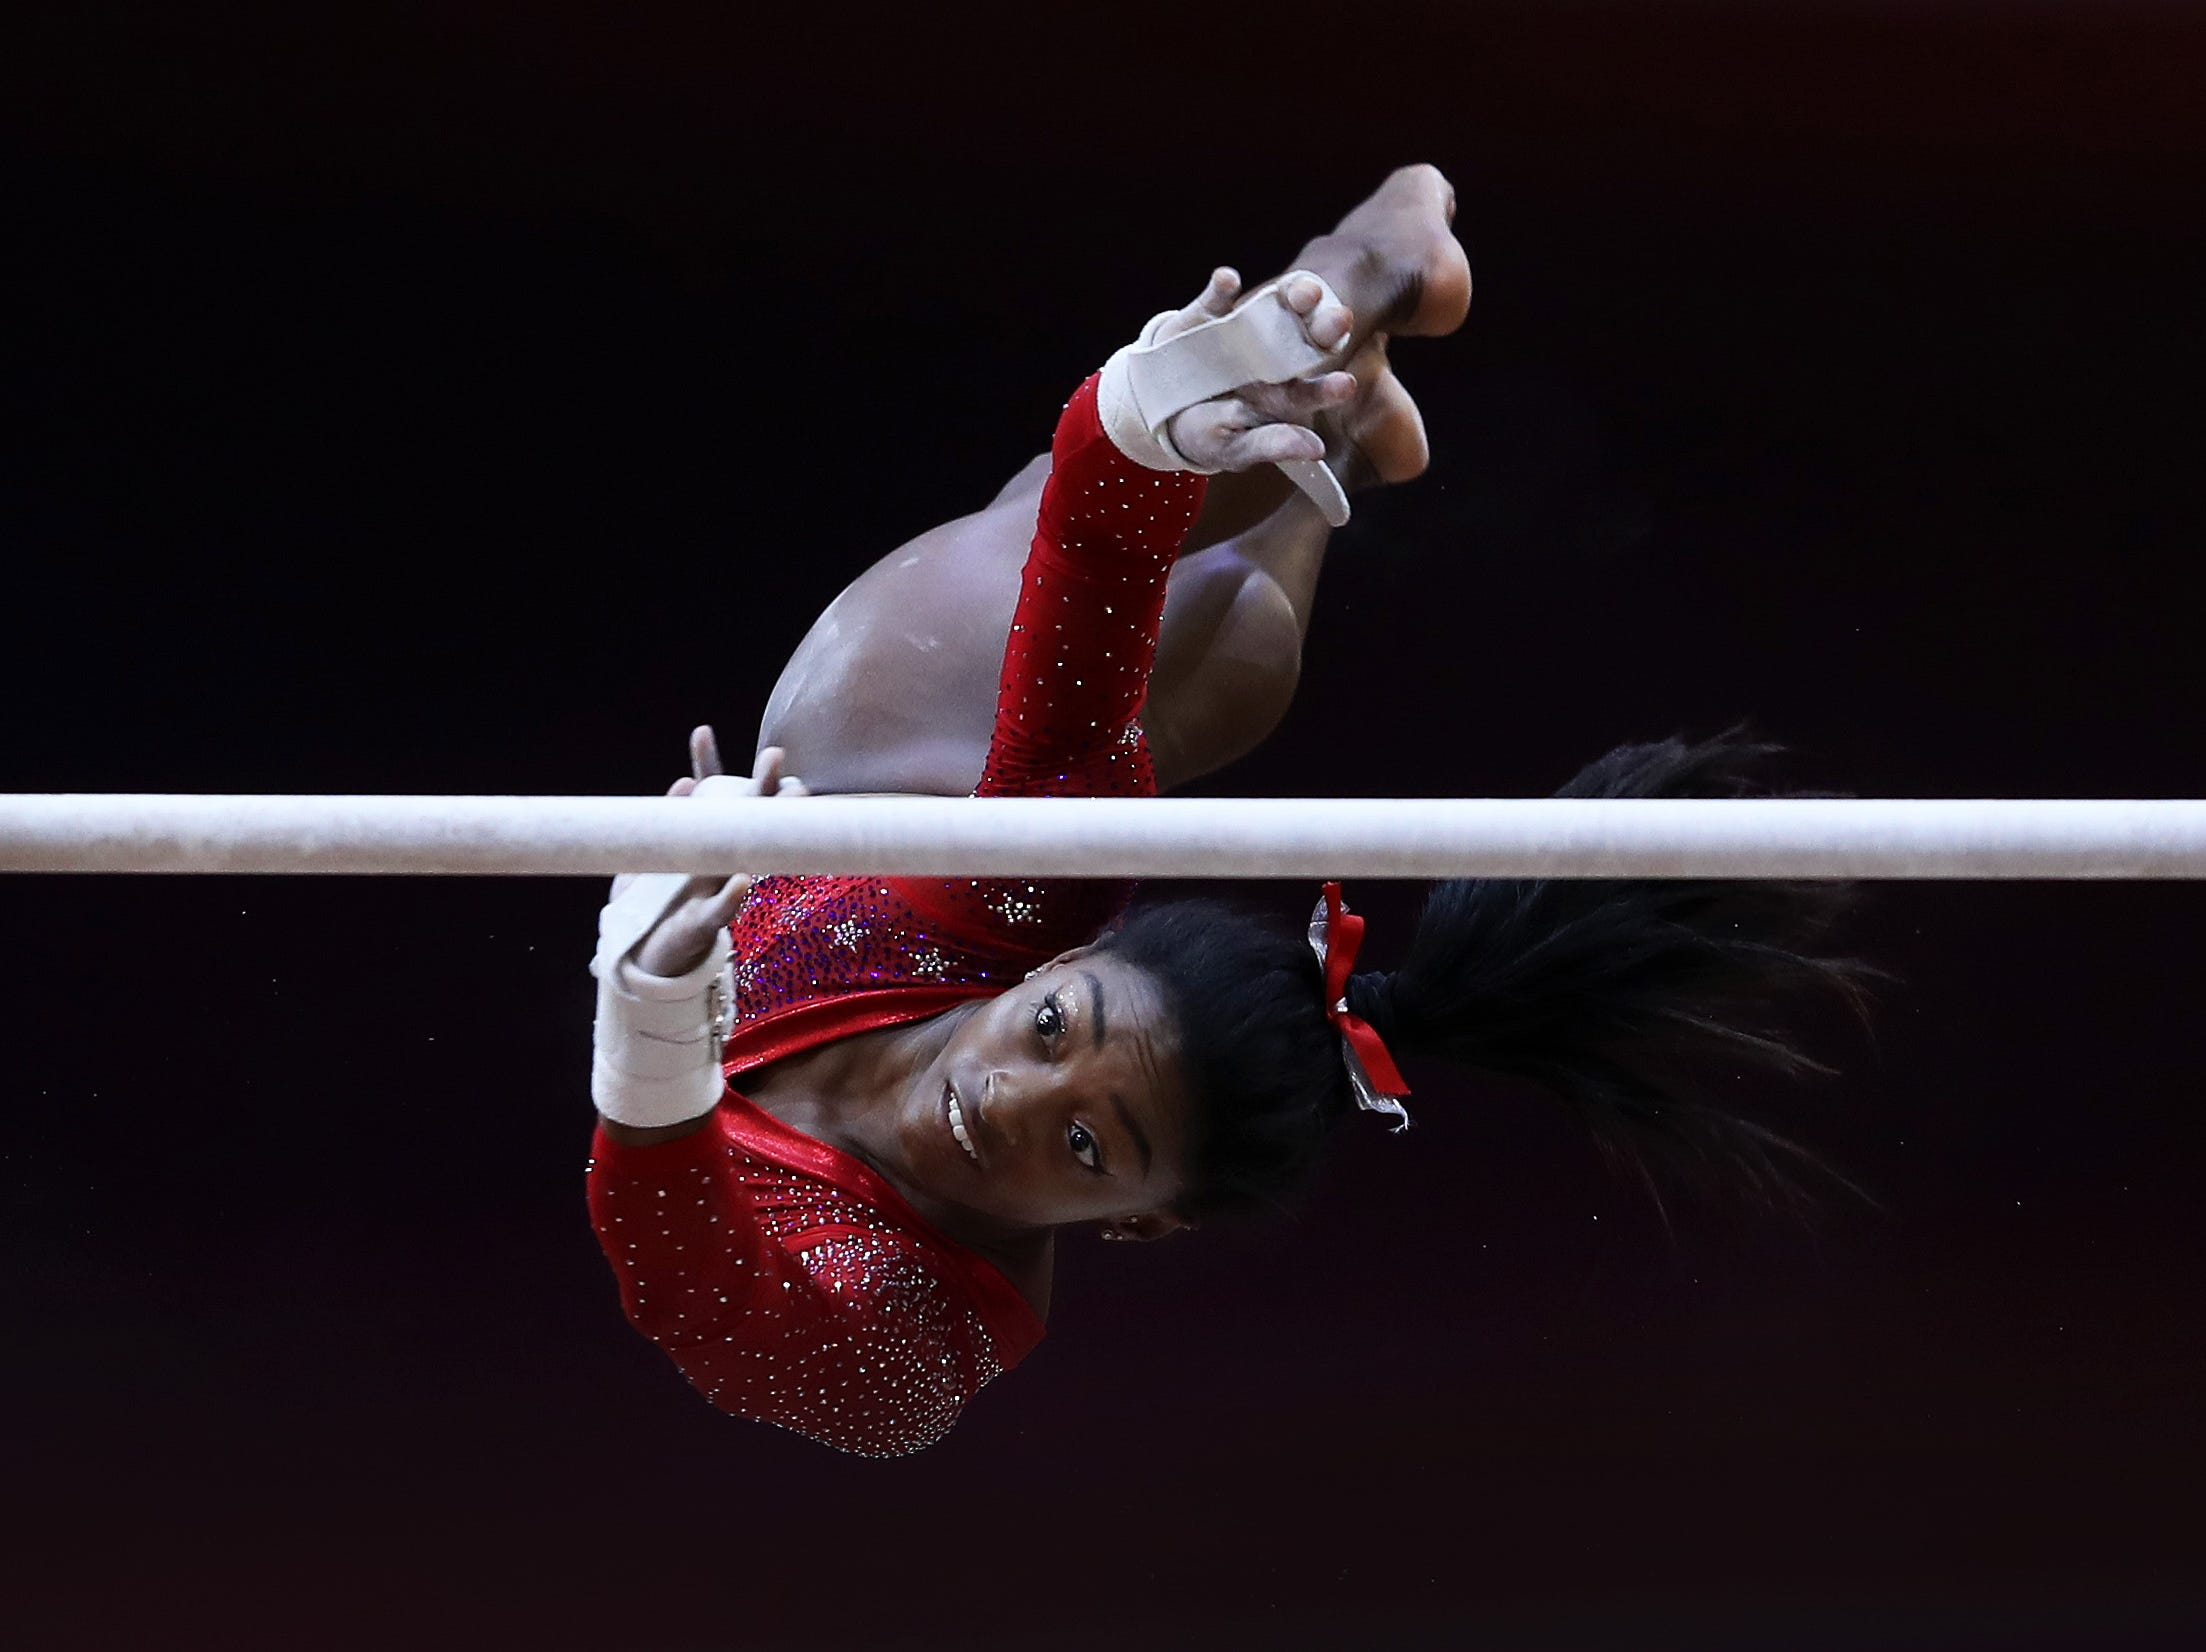 Simone Biles competes during the uneven bars at the 2018 FIG Artistic Gymnastics Championships at Aspire Dome on Oct, 30 in Doha, Qatar.